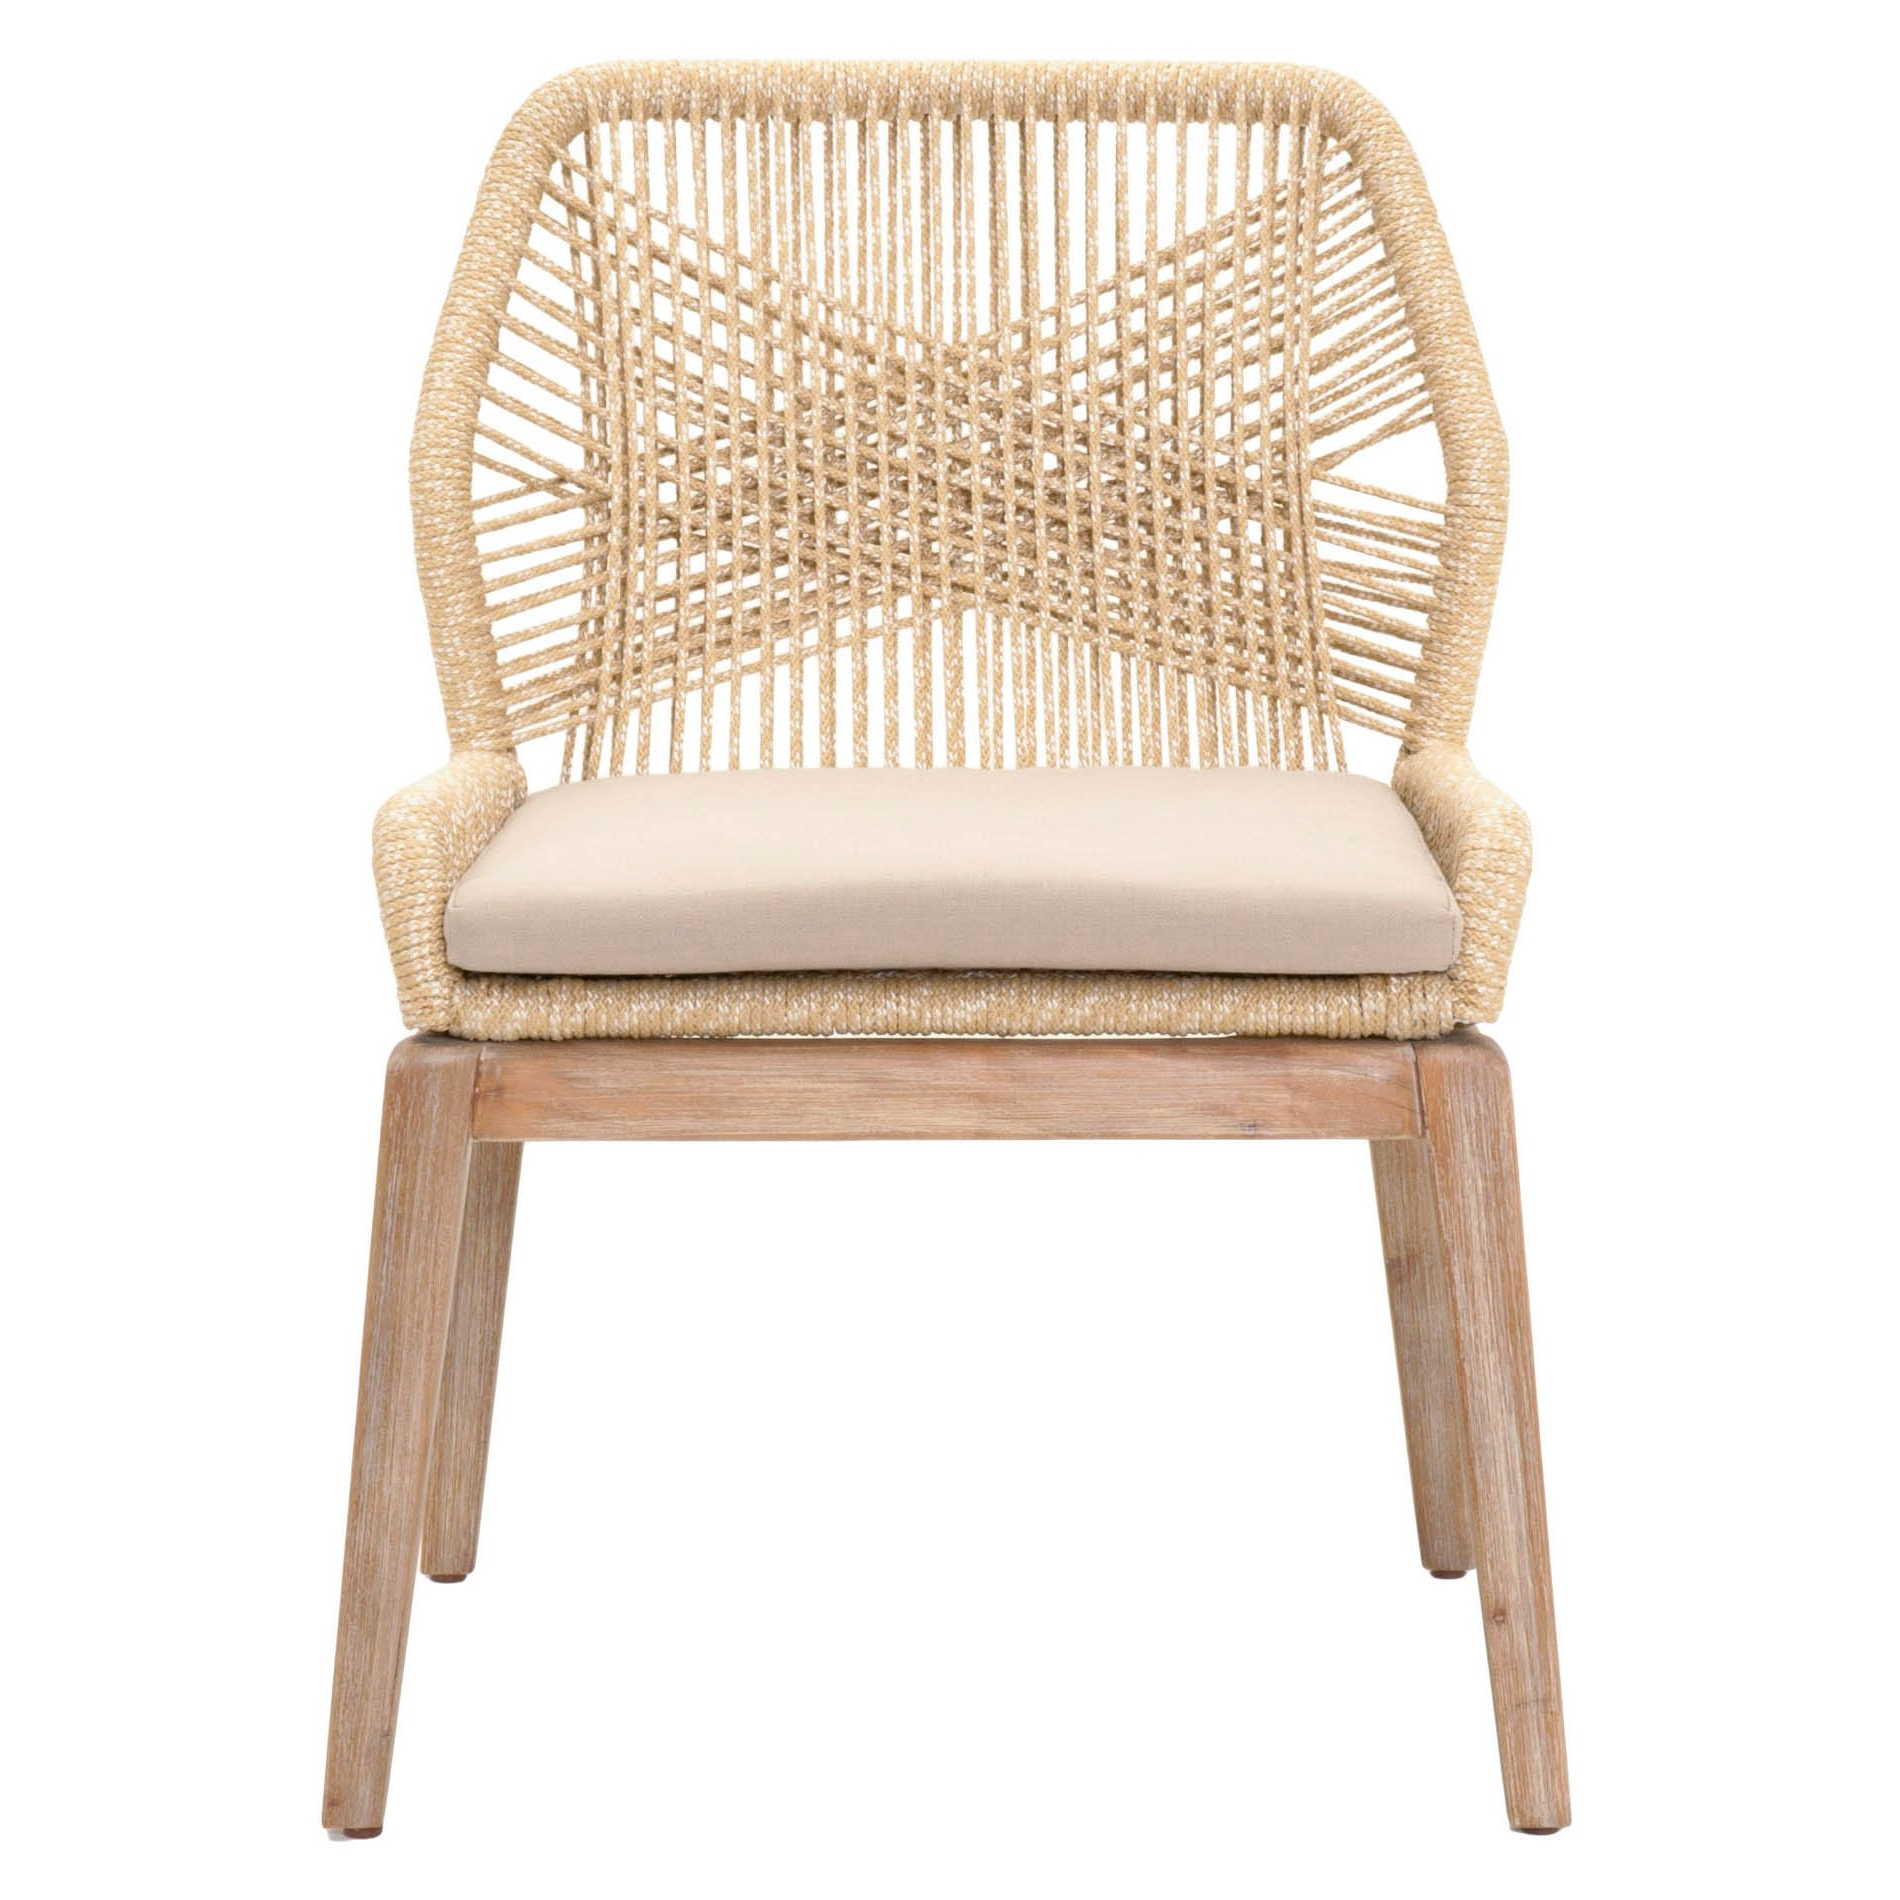 Aime Upholstered Parsons Chairs In Beige Inside Well Liked Rope Dining Chair In (View 10 of 20)